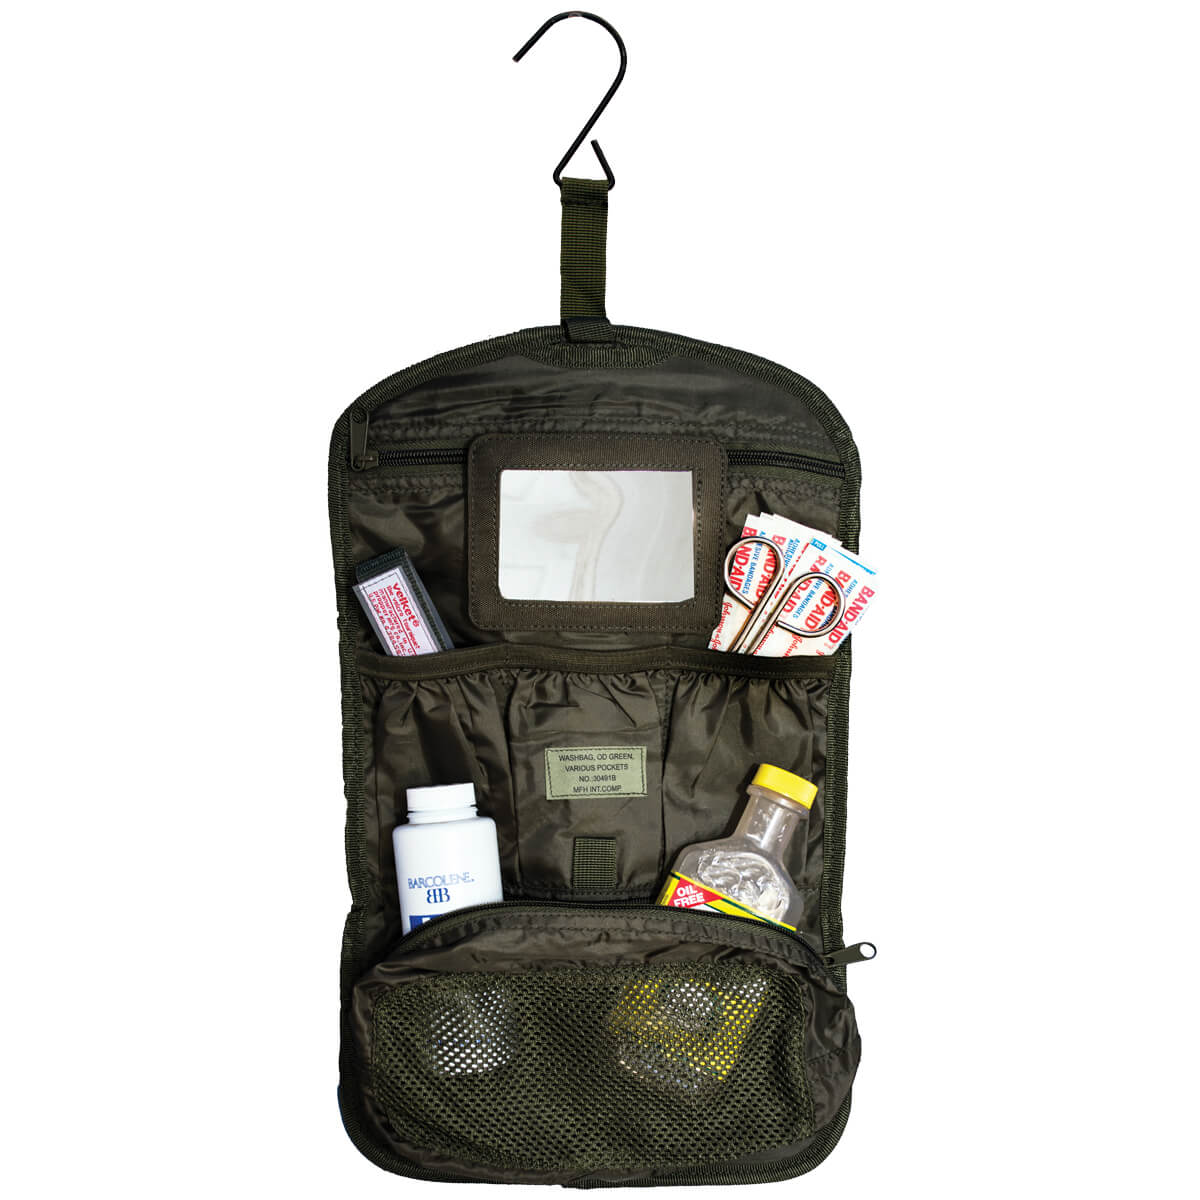 military hanging wash bag for tent camping accessories. From Coleman's Military Surplus